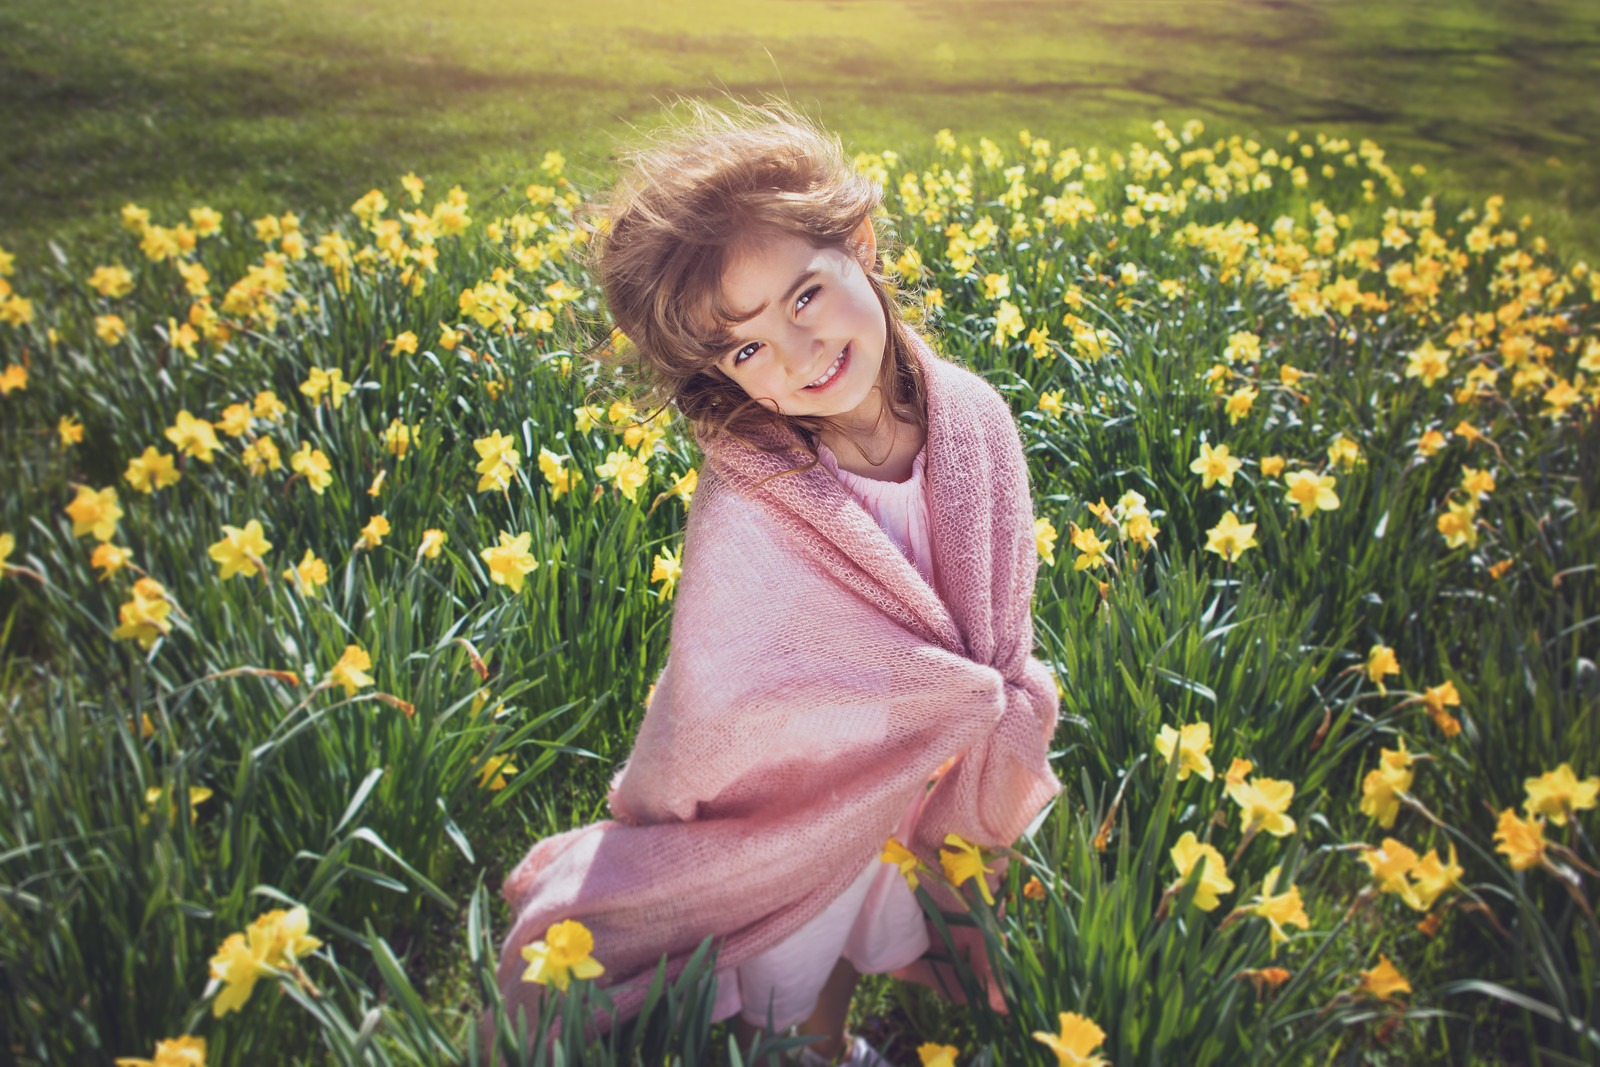 Girl with Pink Blanket in Daffodil Field in Cylburn Arboretum